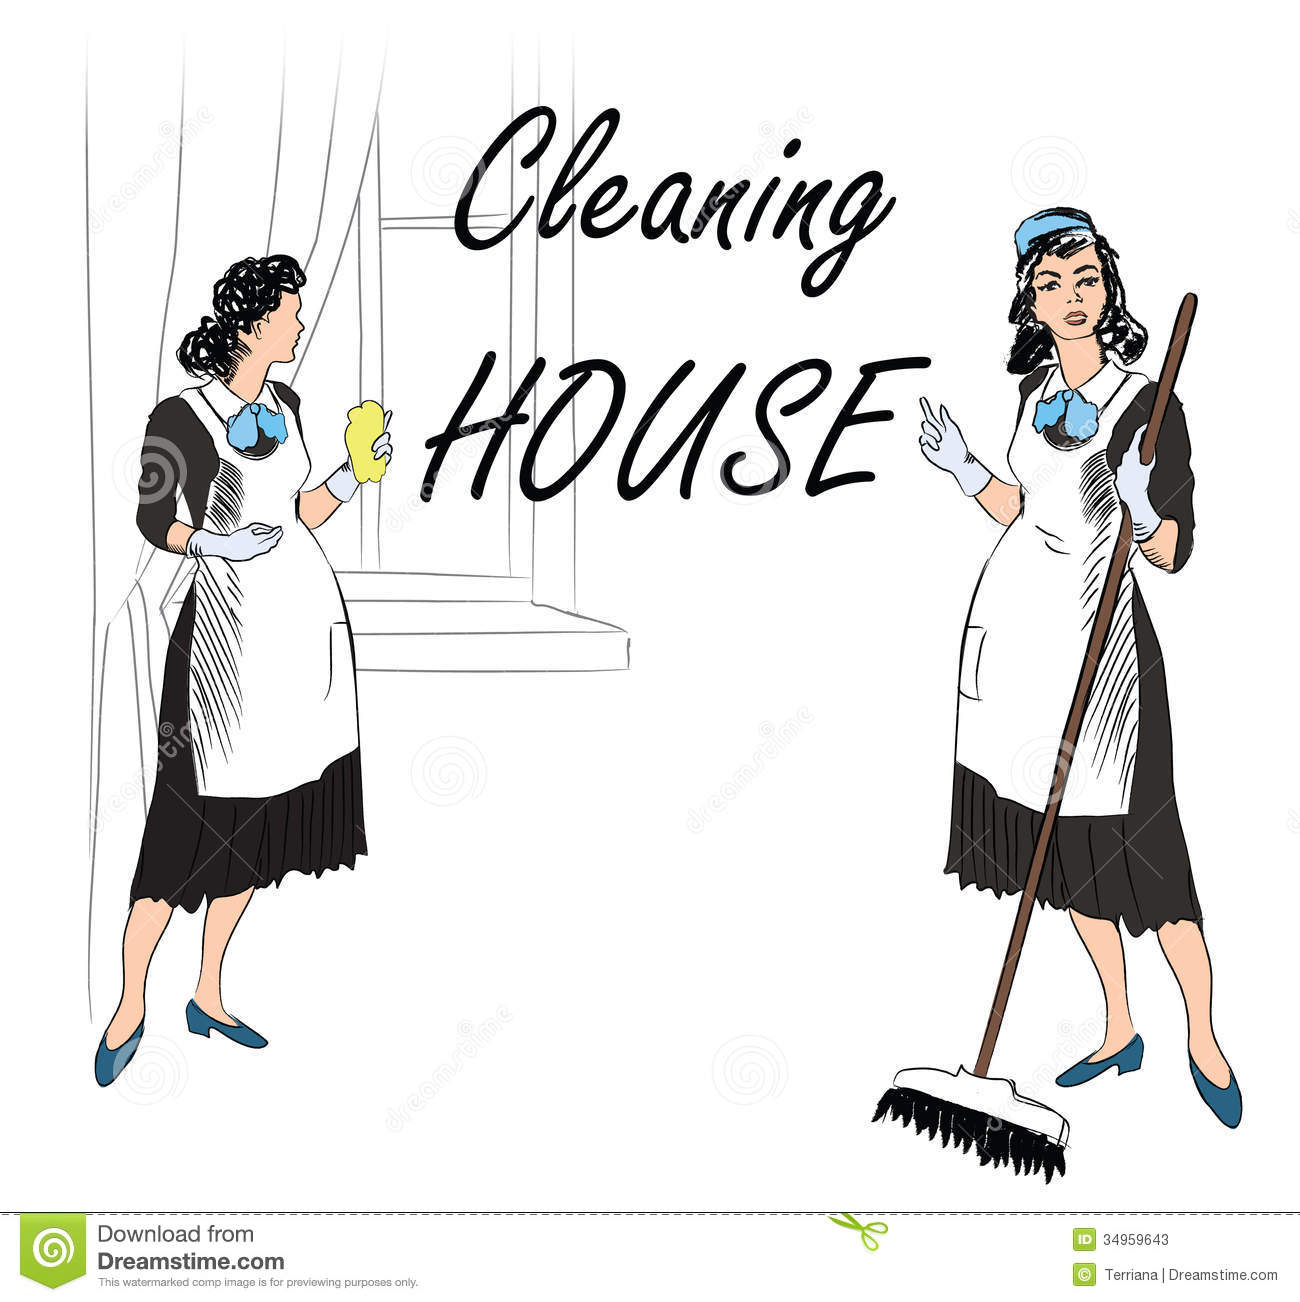 cleaning services clipart clipart kid maid 20clipart clipart panda clipart images